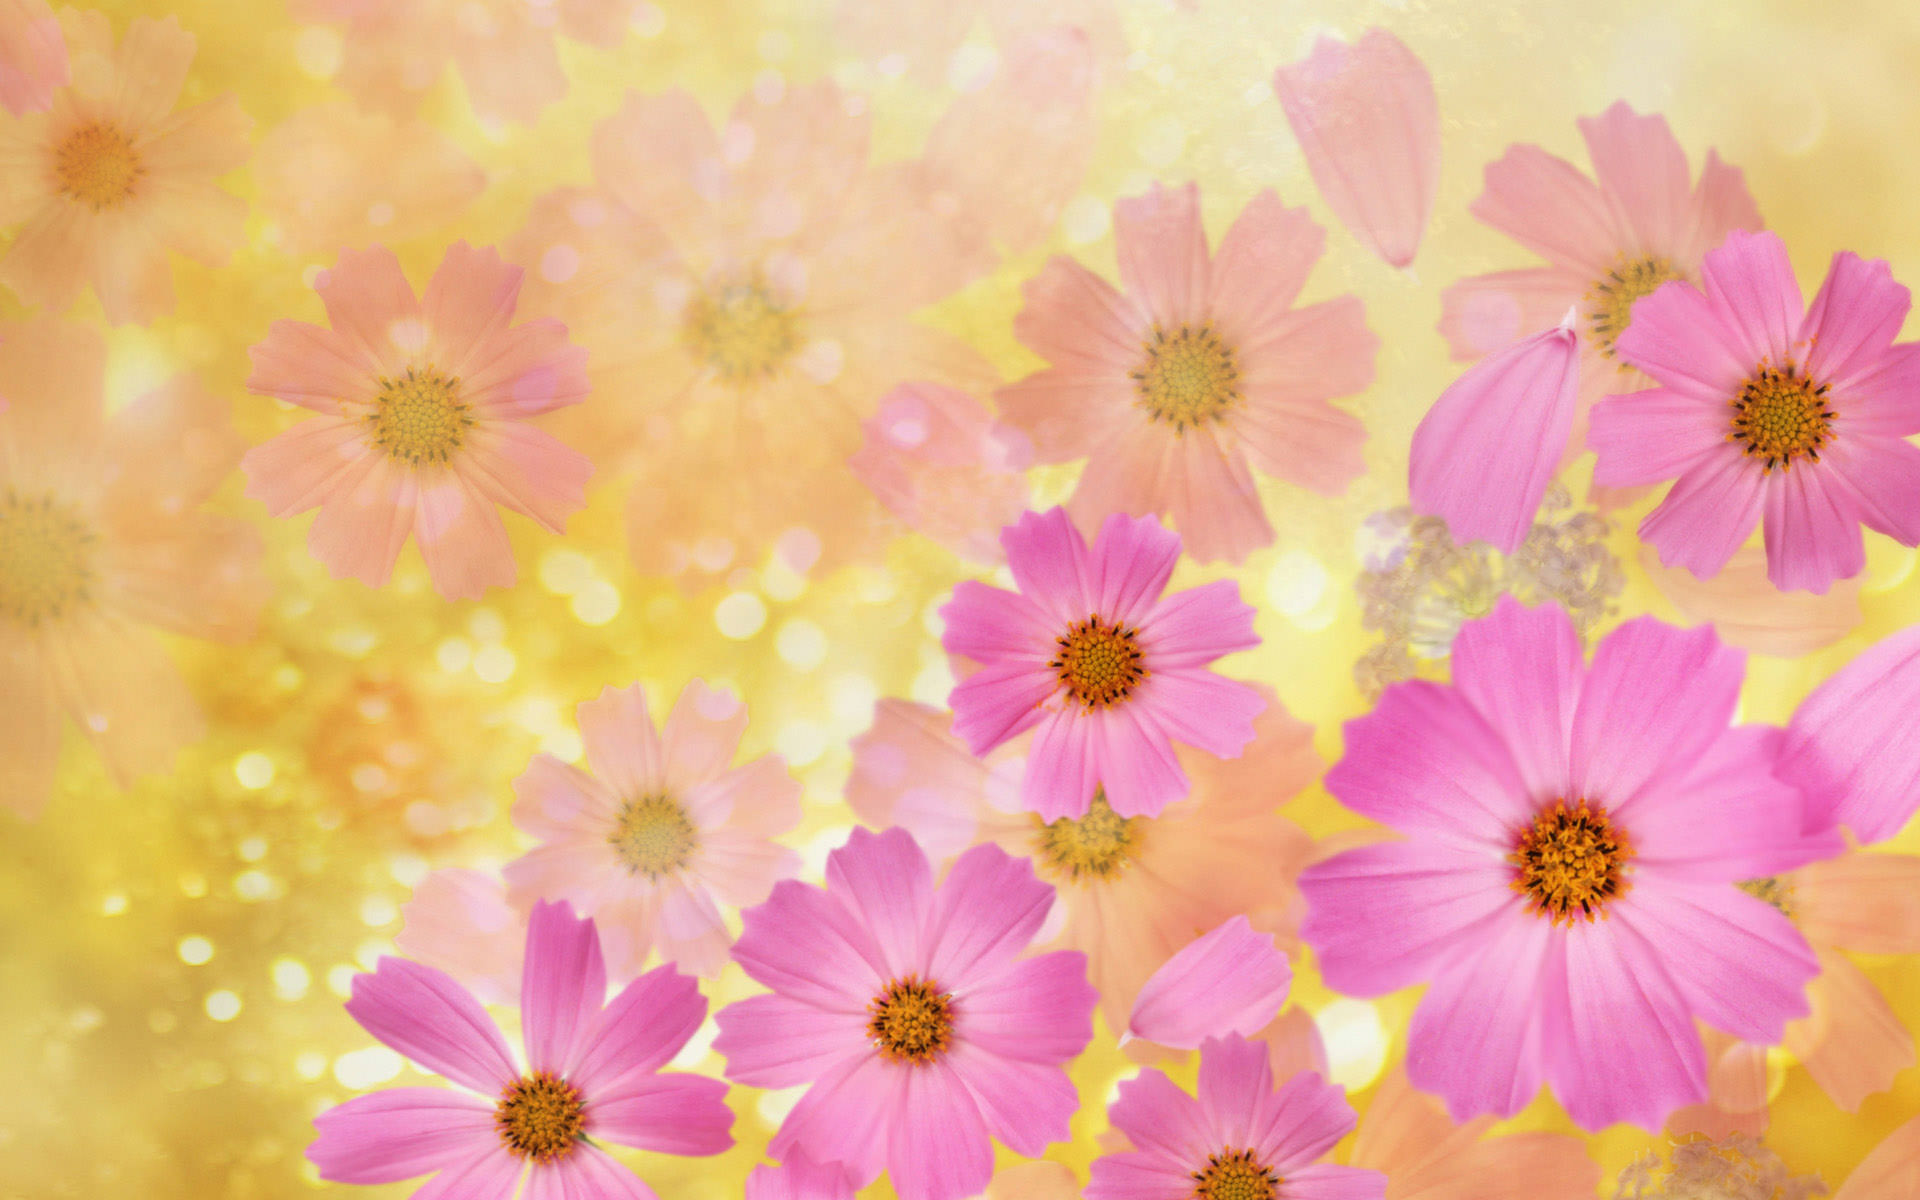 169 flower backgrounds wallpapers pictures images design beautiful flower wallpaper pink tulips background mightylinksfo